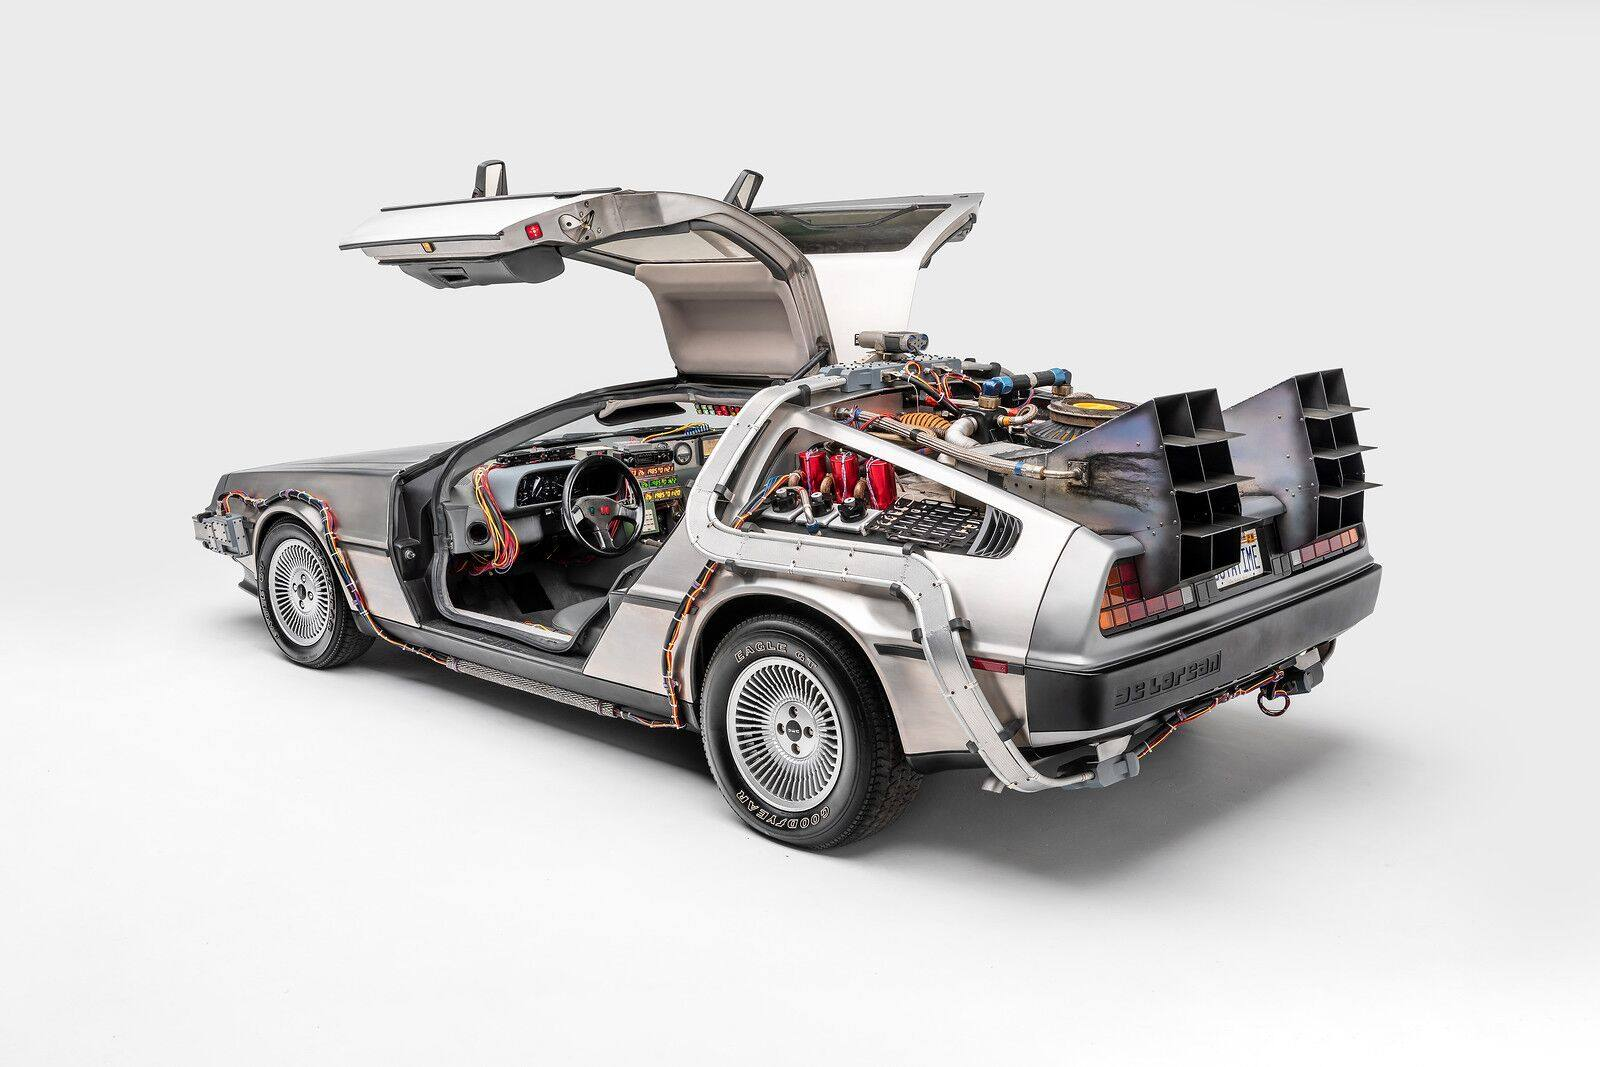 DeLorean Time Machine from Back to the Future (1985), Back to the Future II (1989), and Back to the Future III (1990) | Photo: Petersen Automotive Museum